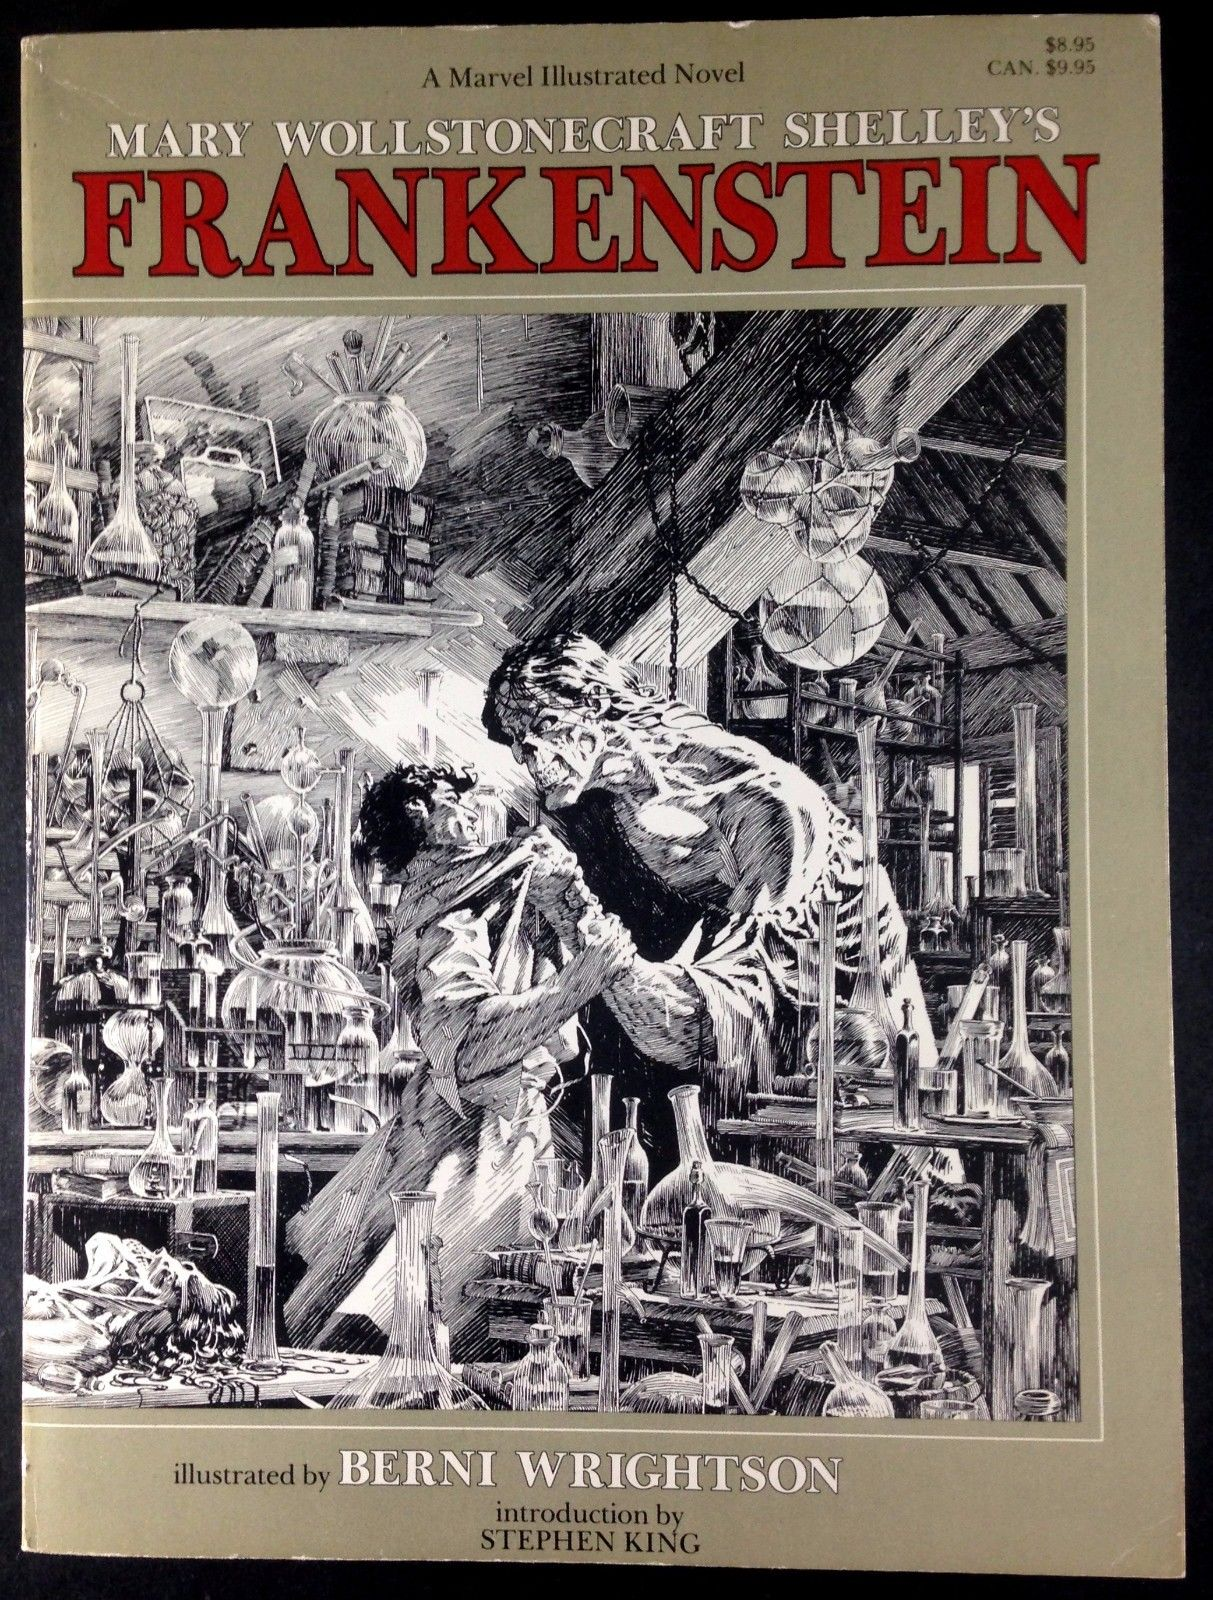 an overview of the victors fight against nature in the novel frankenstein by mary shelley